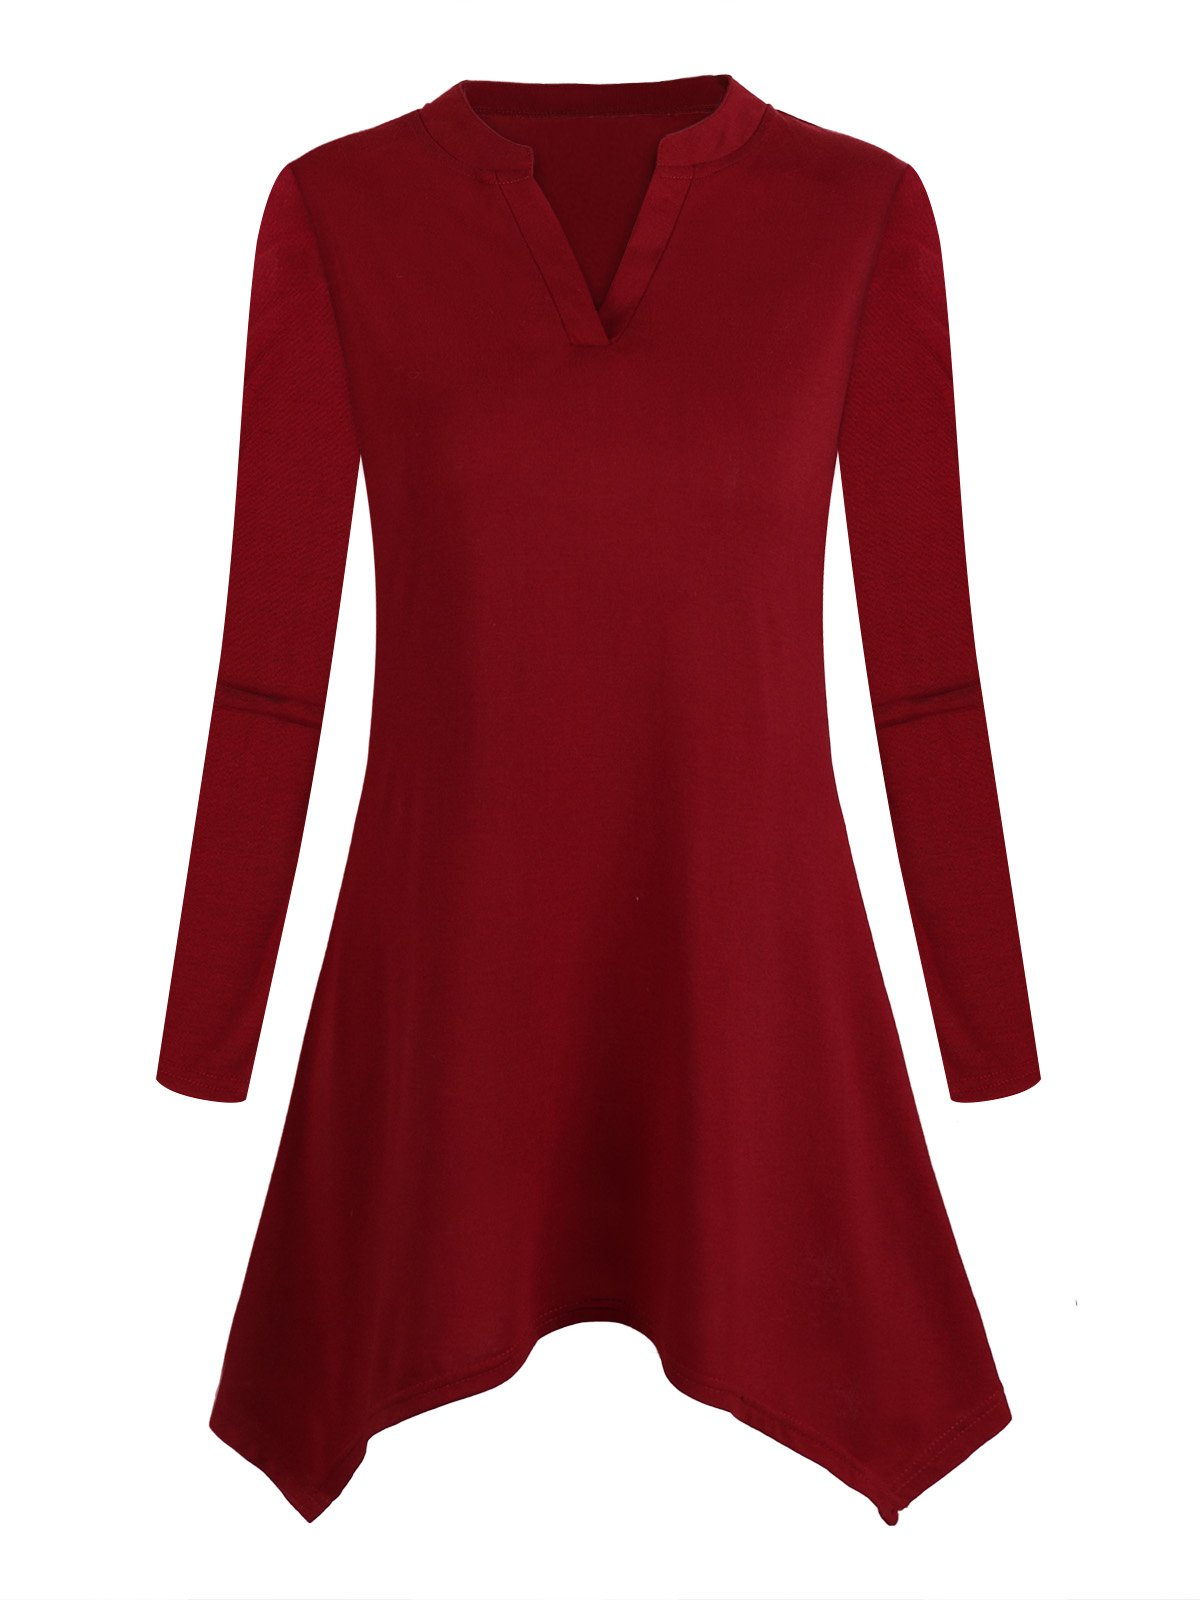 DSUK Asymmetric Hem Tunic, Juniors 3/4 Sleeve Unbalanced Irregular Hemline Fashion Style Looseness Fitting Smoothly New Slender Cosy Chic Tshirt Tunic Blouse for Office Wine Red Large